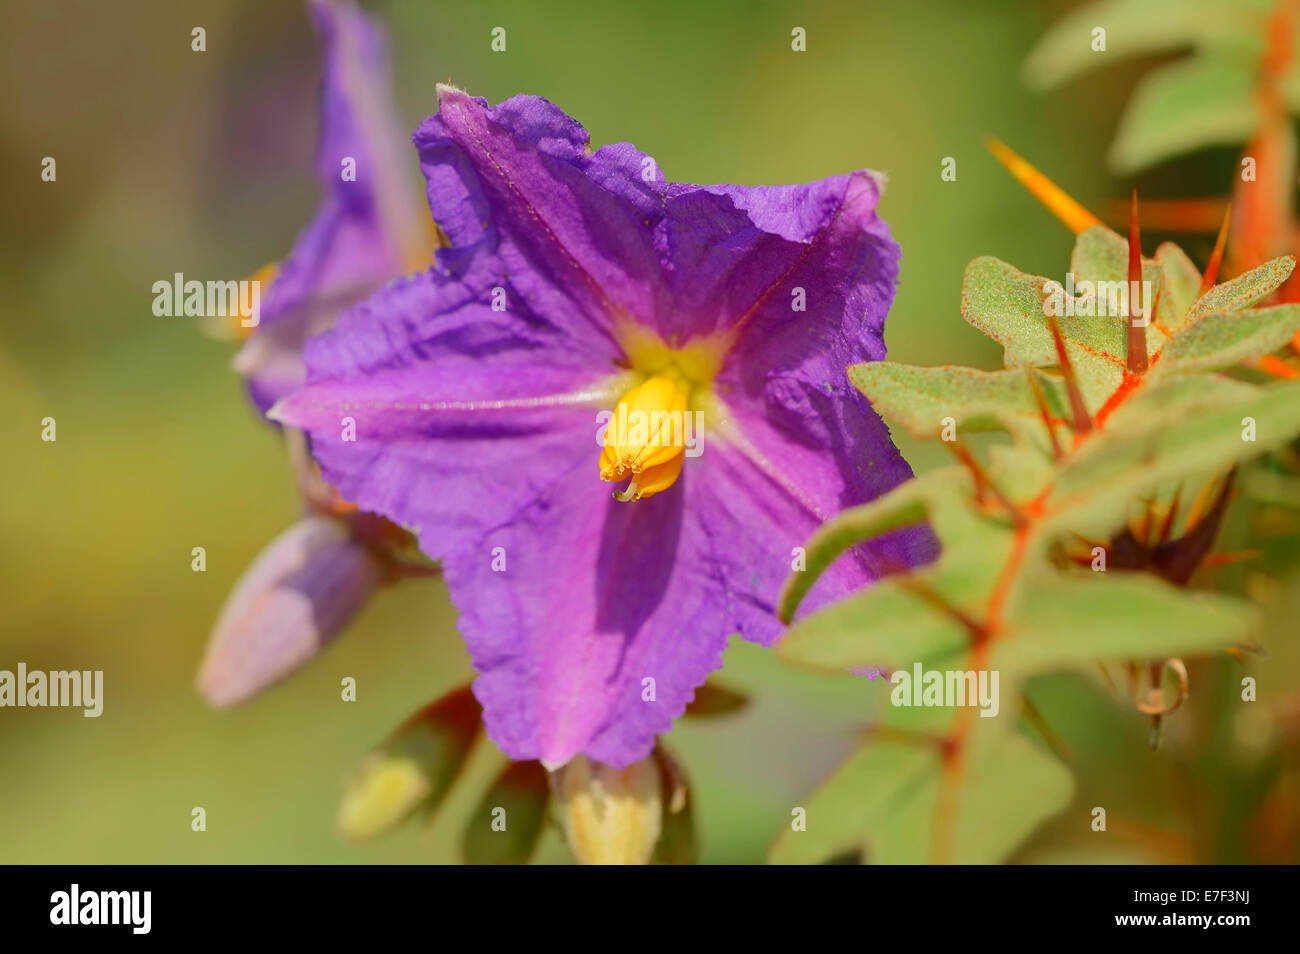 Porcupine Tomato (Solanum pyracanthum), flower, native to Madagascar and the western Indian Ocean - Stock Image